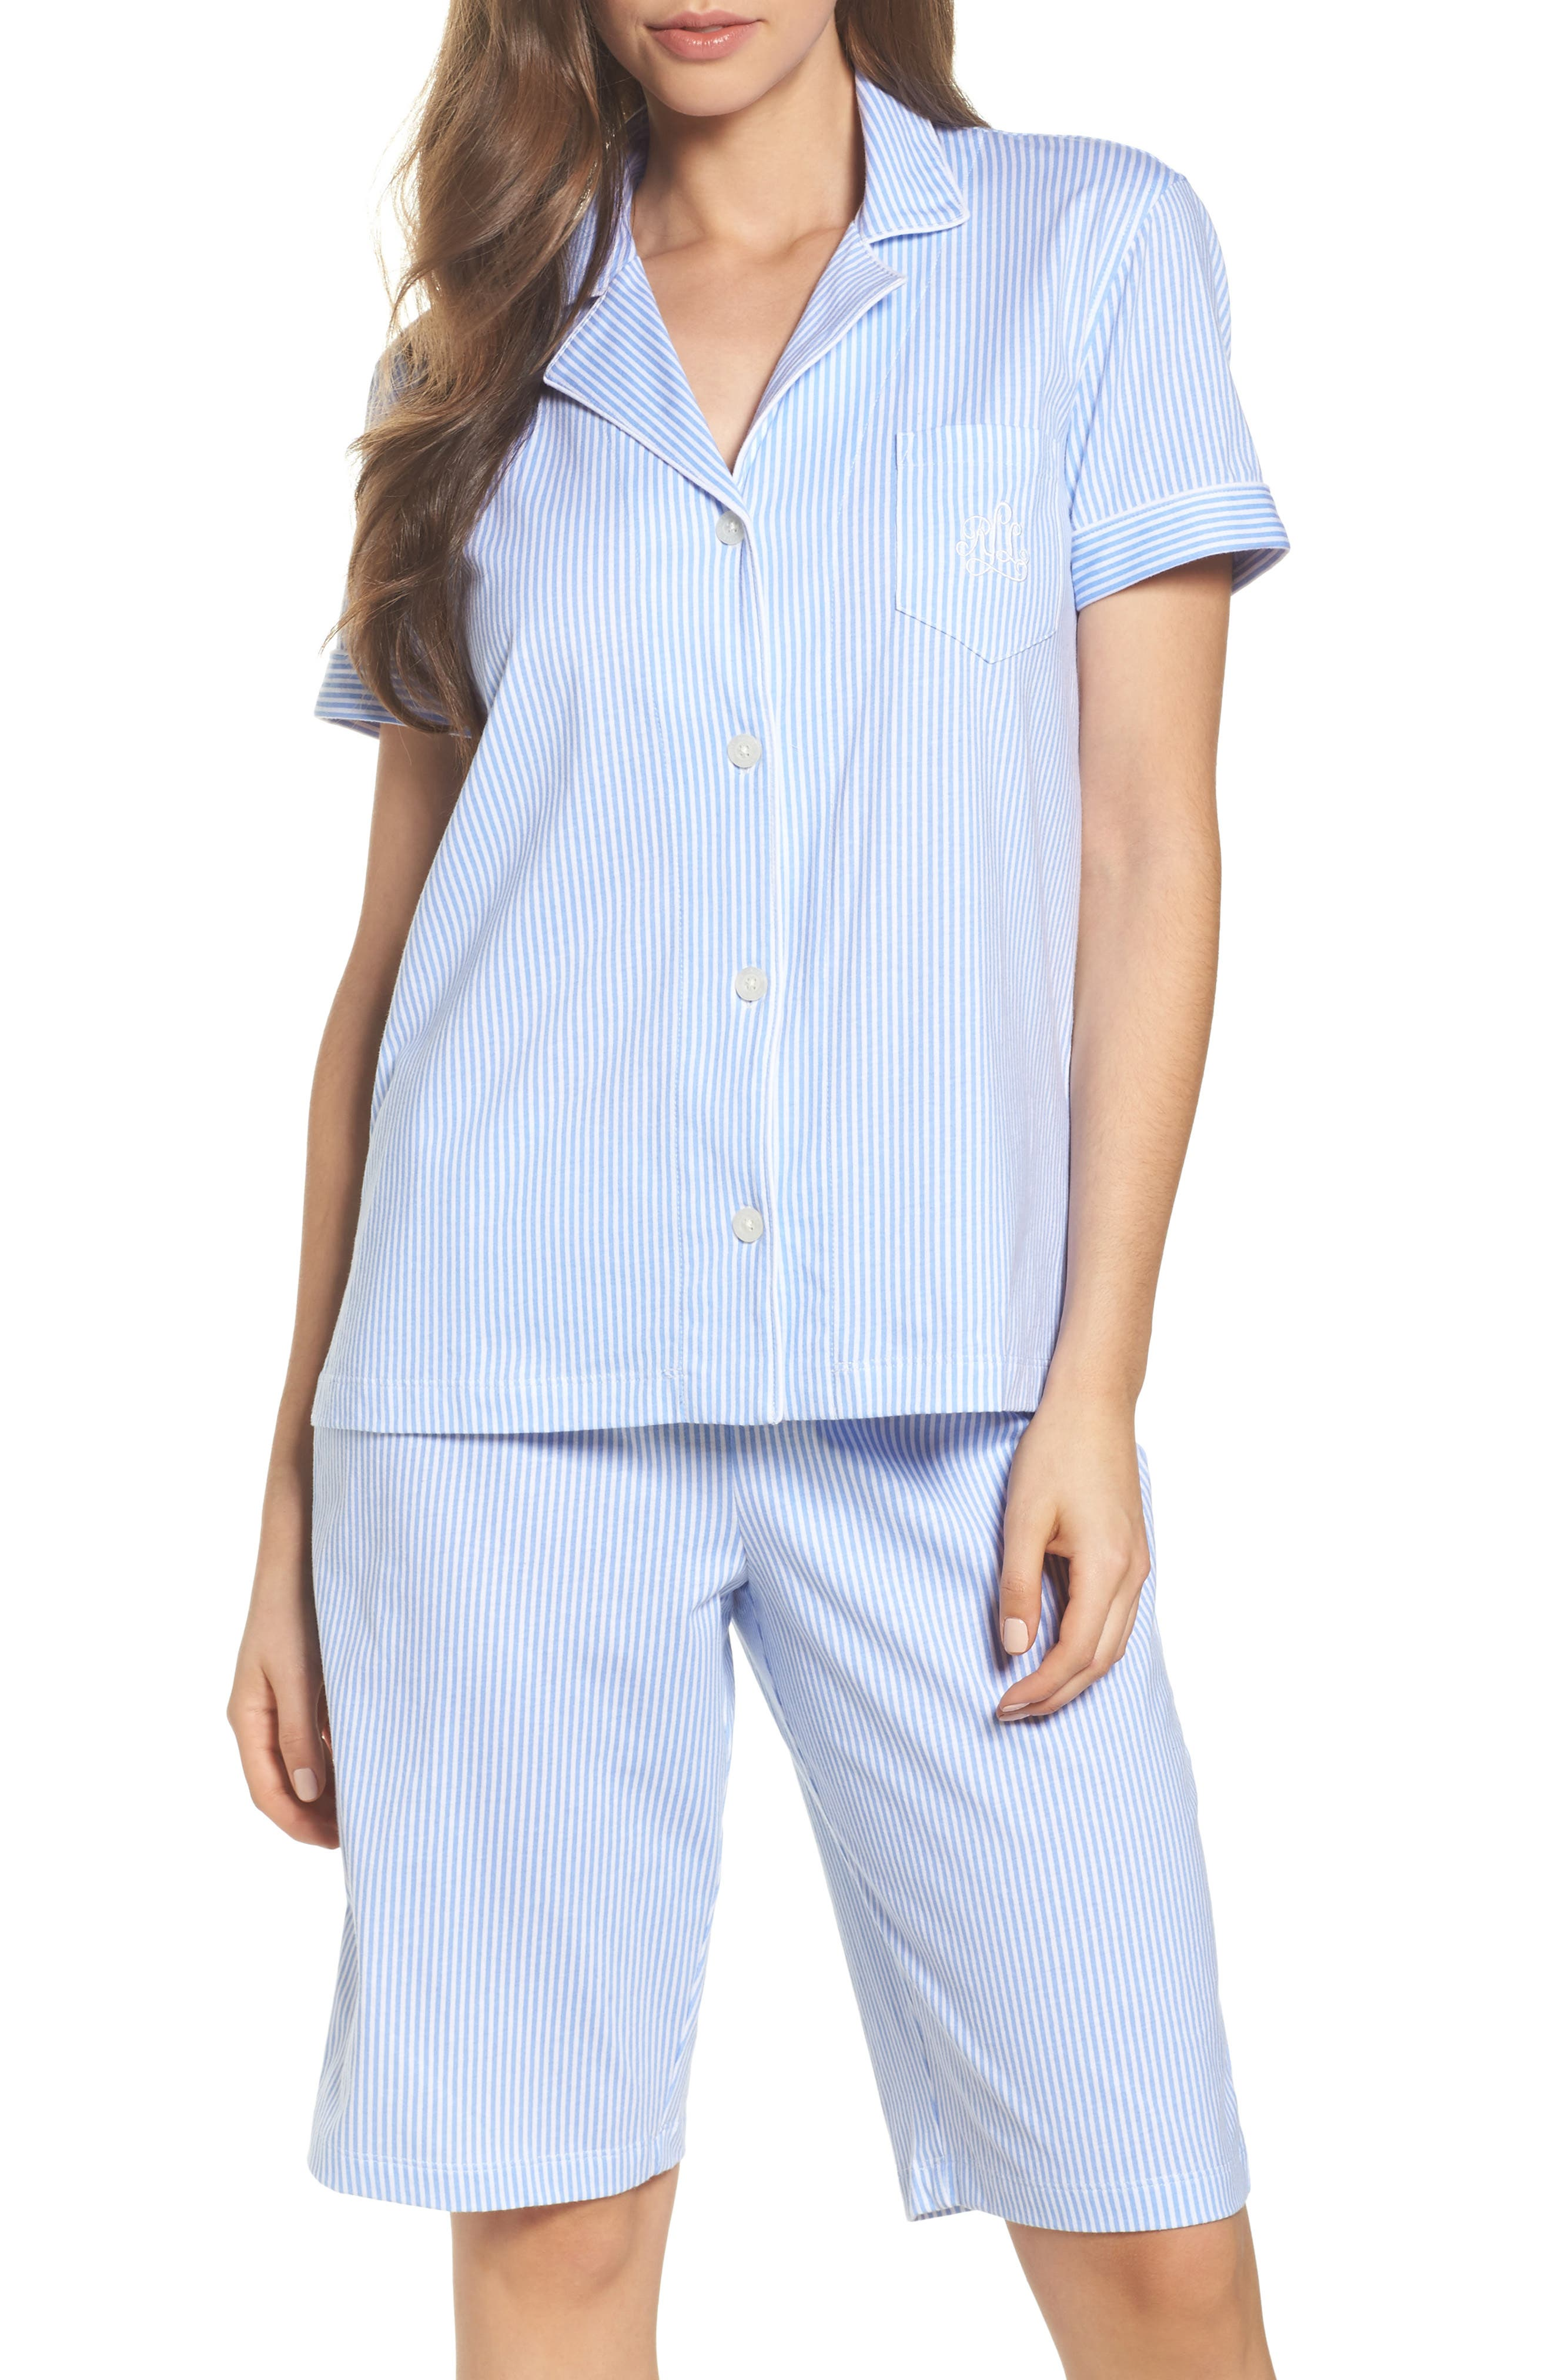 Bermuda Pajamas,                             Main thumbnail 1, color,                             Feather Blue Stripe